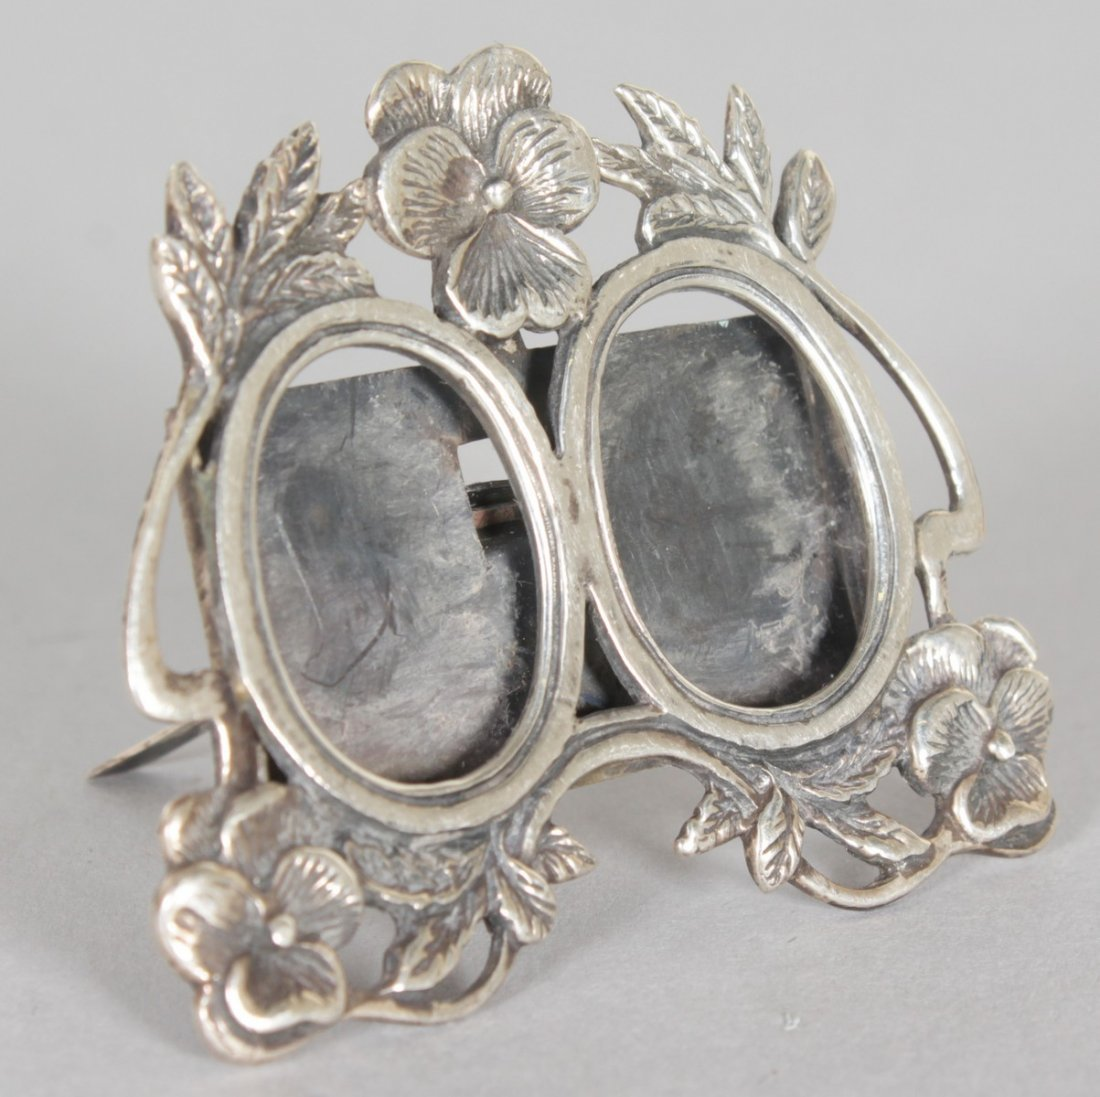 A MINIATURE SILVER DOUBLE FRAME.